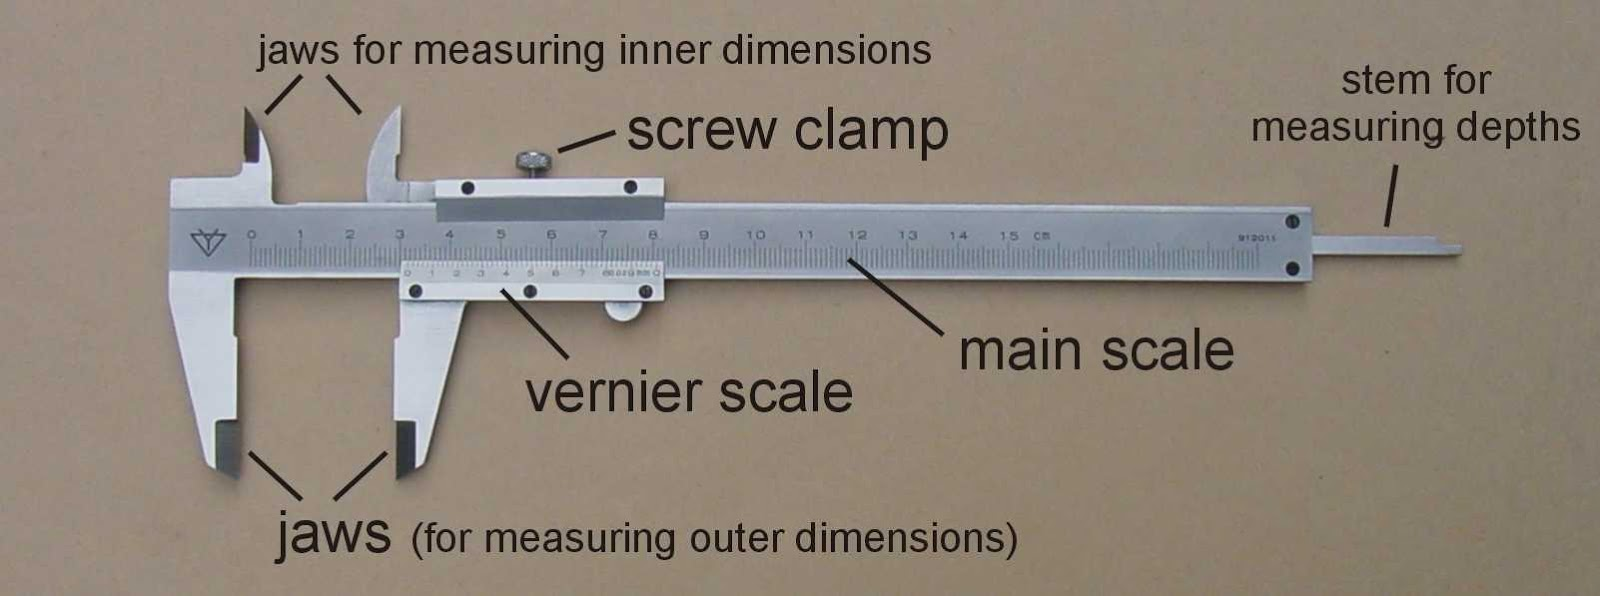 medium resolution of  the diagram below the outside jaws are used to measure the outer dimensions of an object and the inner jaws for the inner ones